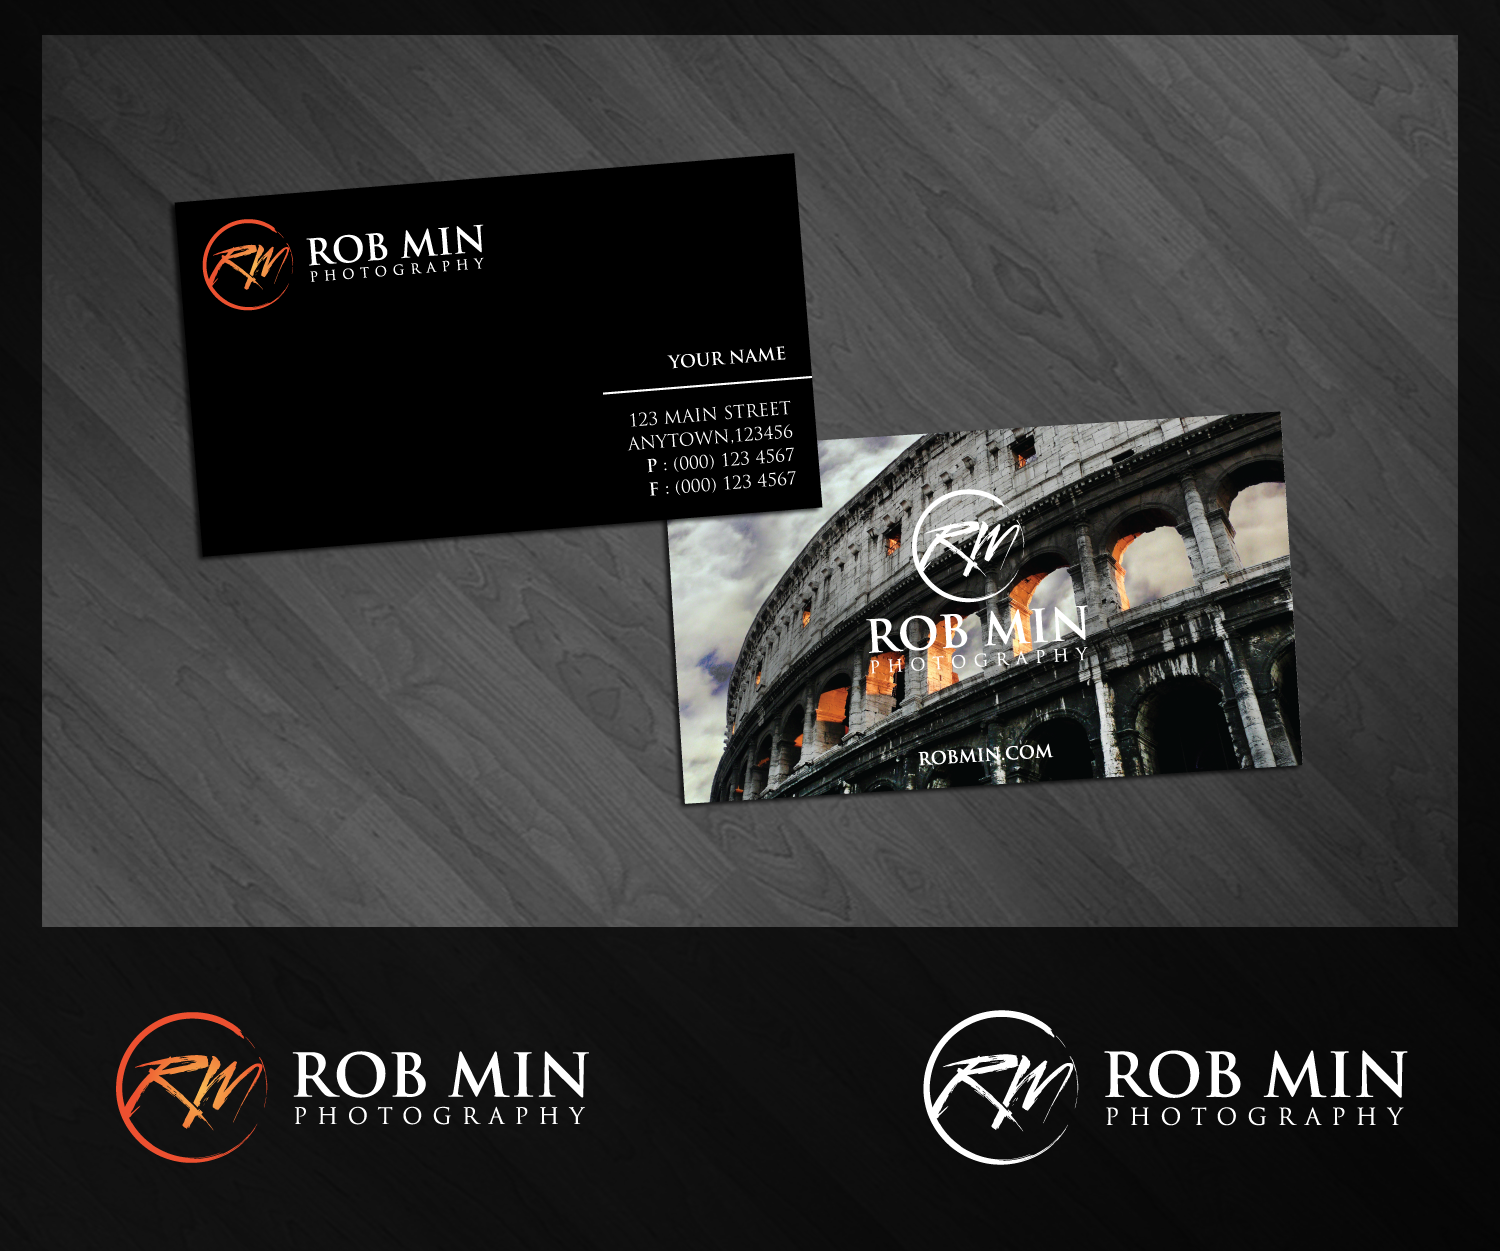 Create the next logo and business card for Rob Min Photography